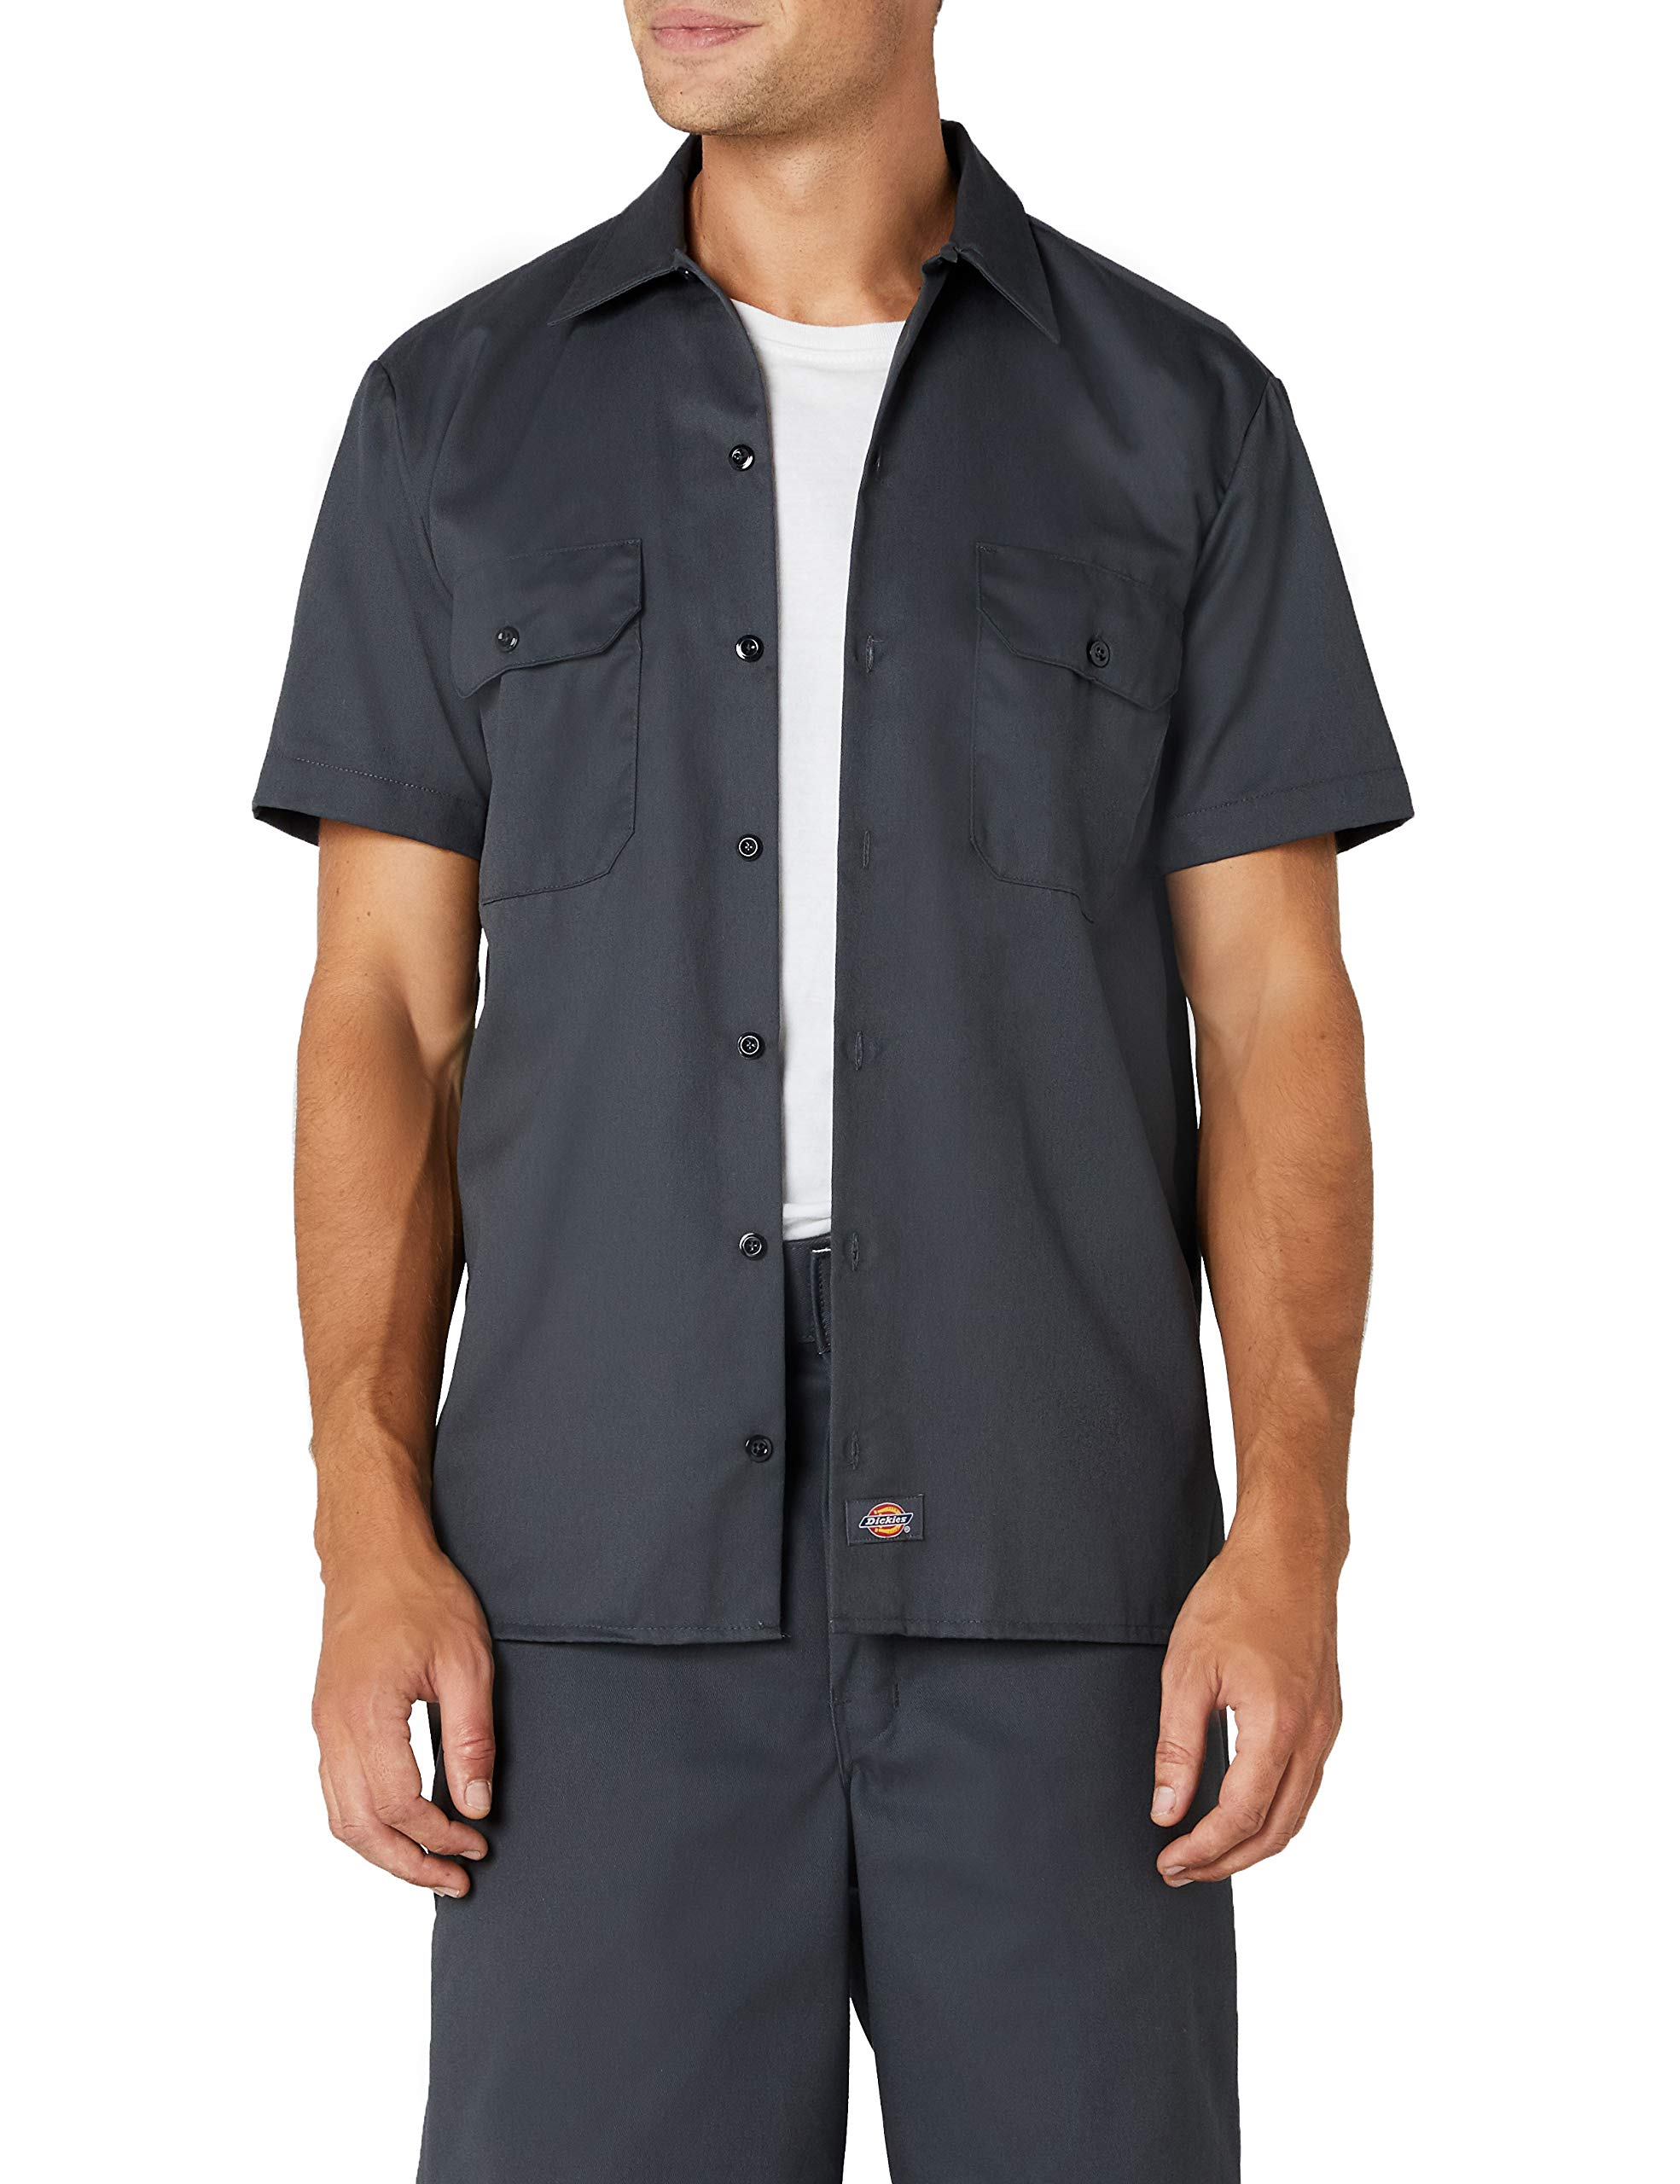 Dickies Men's Big and Tall Short Sleeve Work Shirt, Charcoal, Extra Large by Dickies